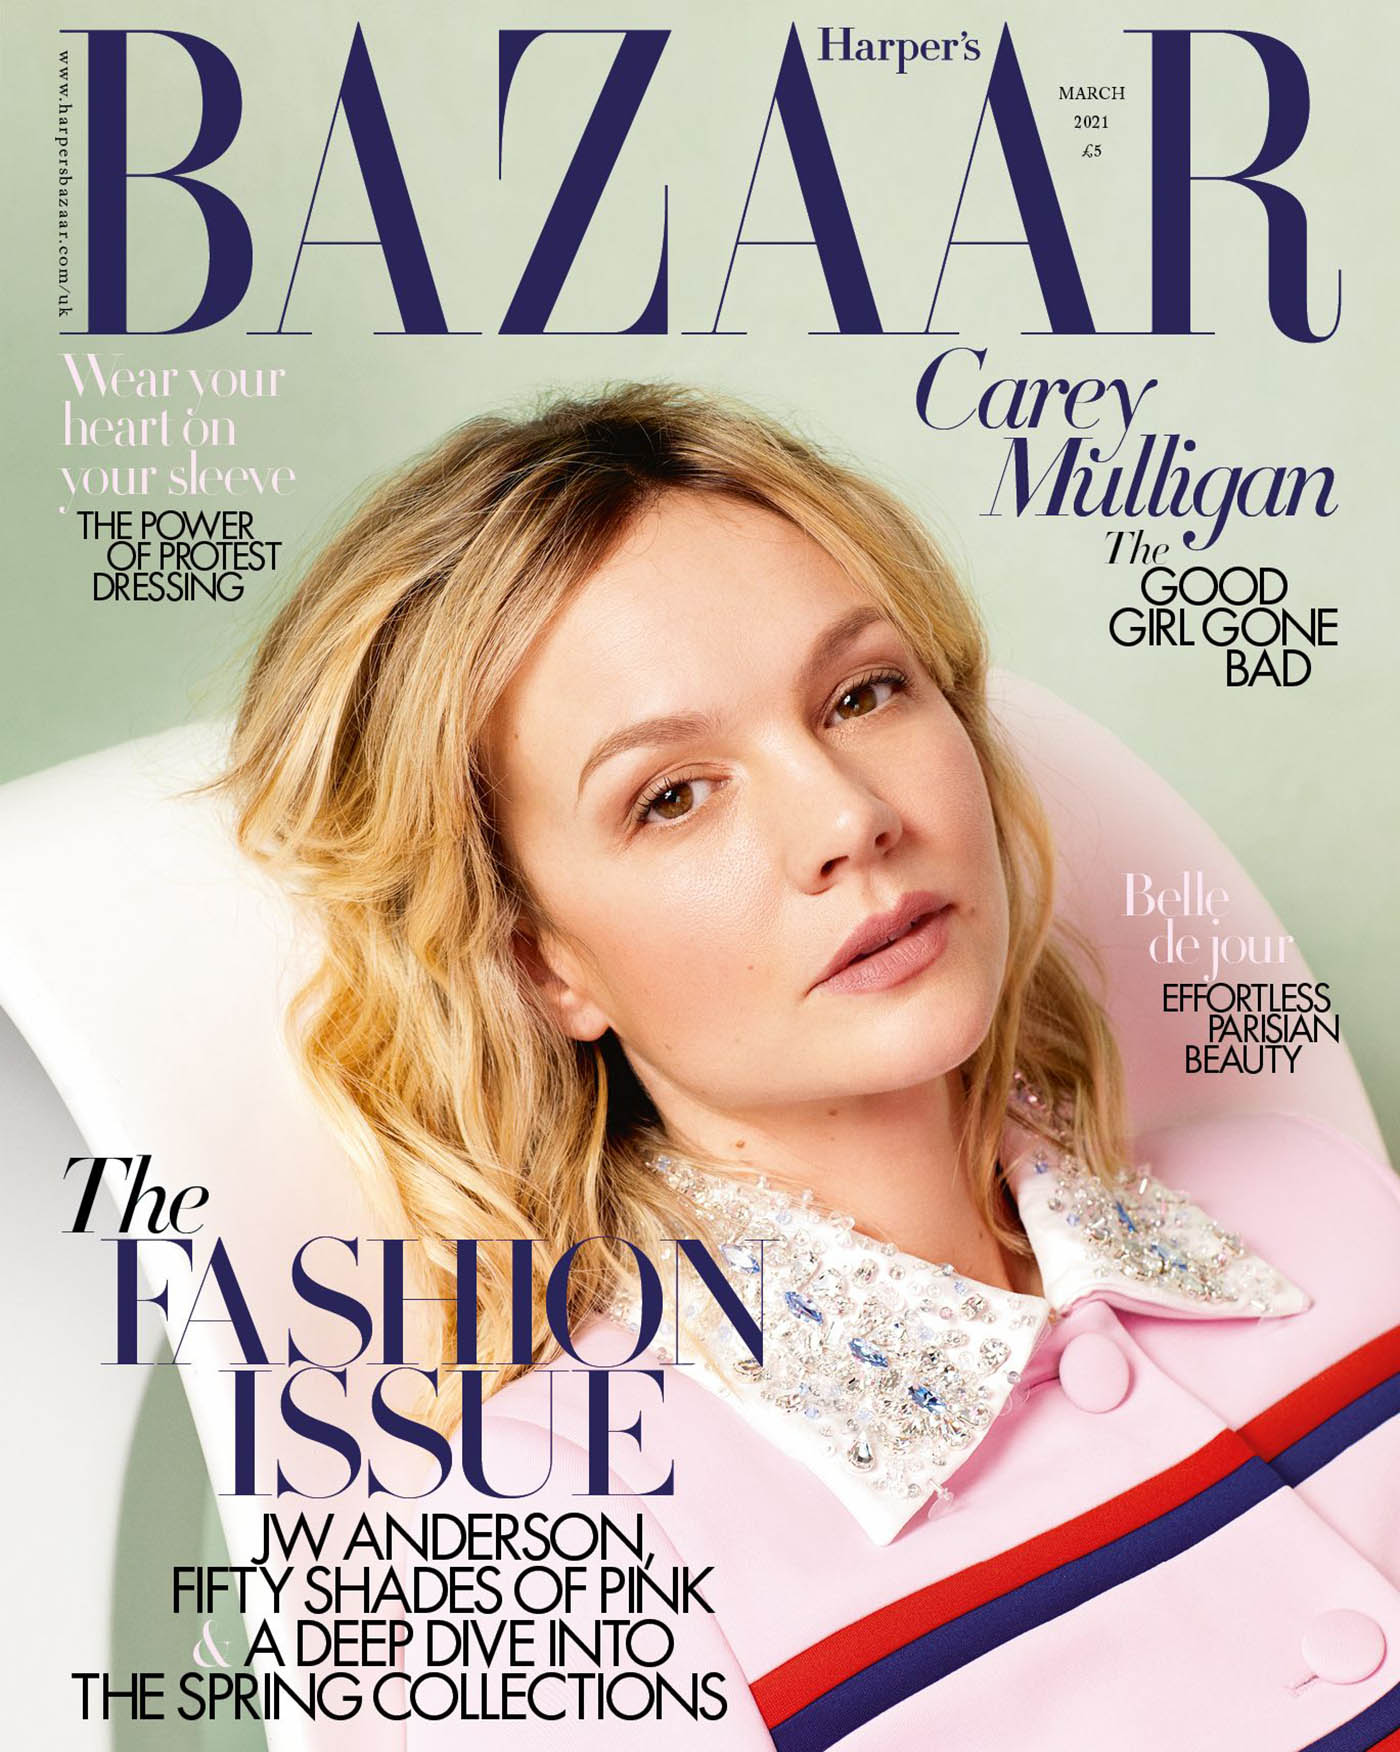 Carey Mulligan covers Harper's Bazaar UK March 2021 by Quentin Jones